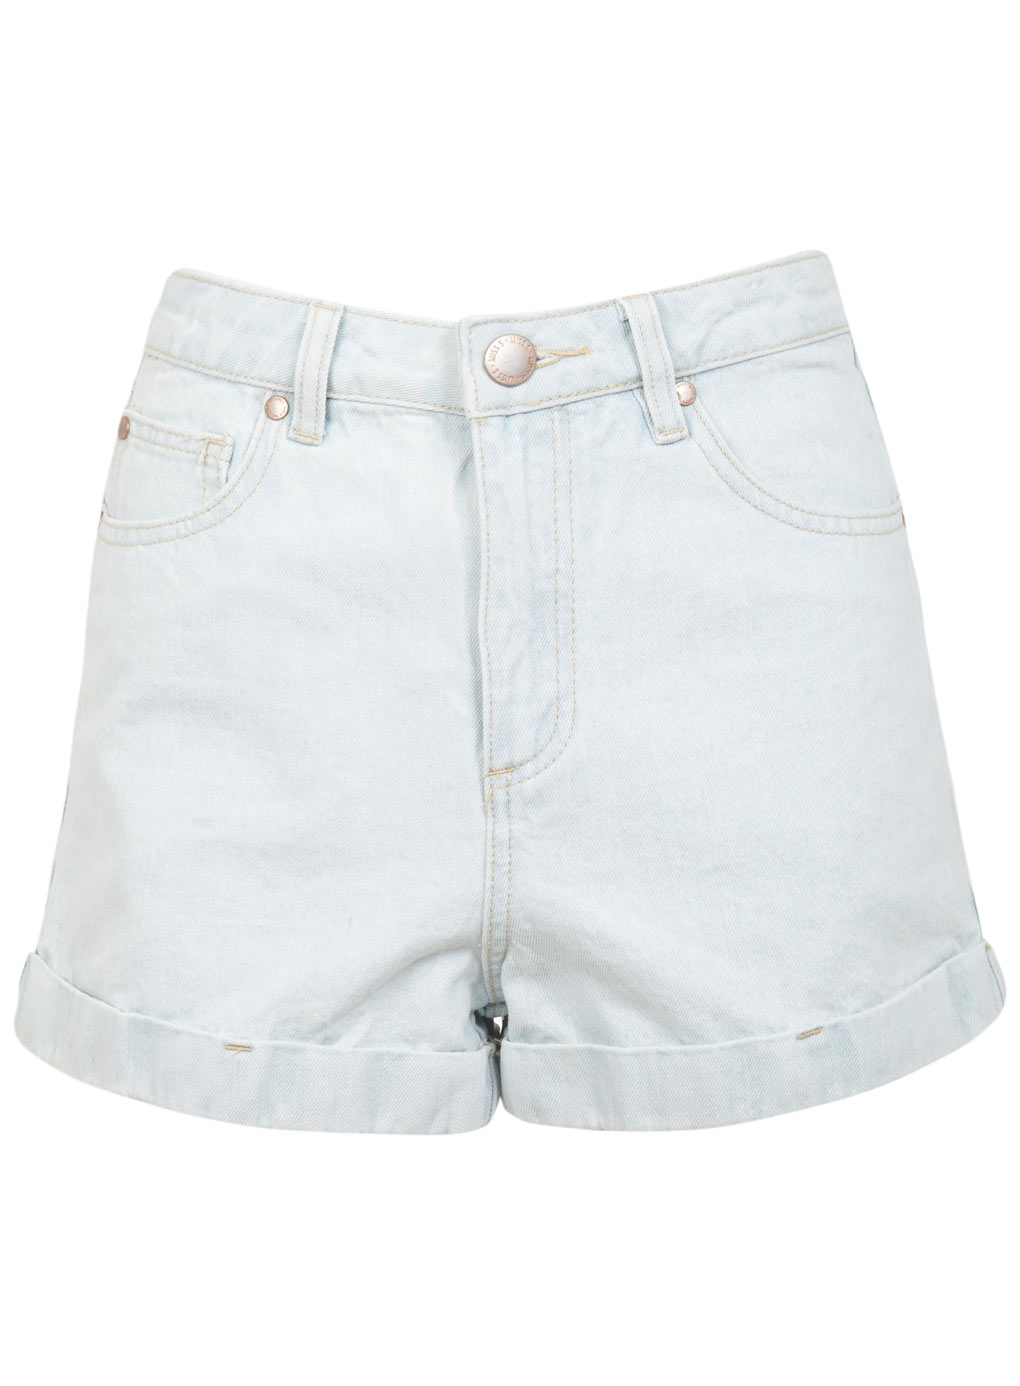 Bleach High Waist Denim Short - Festival Shop - Clothing